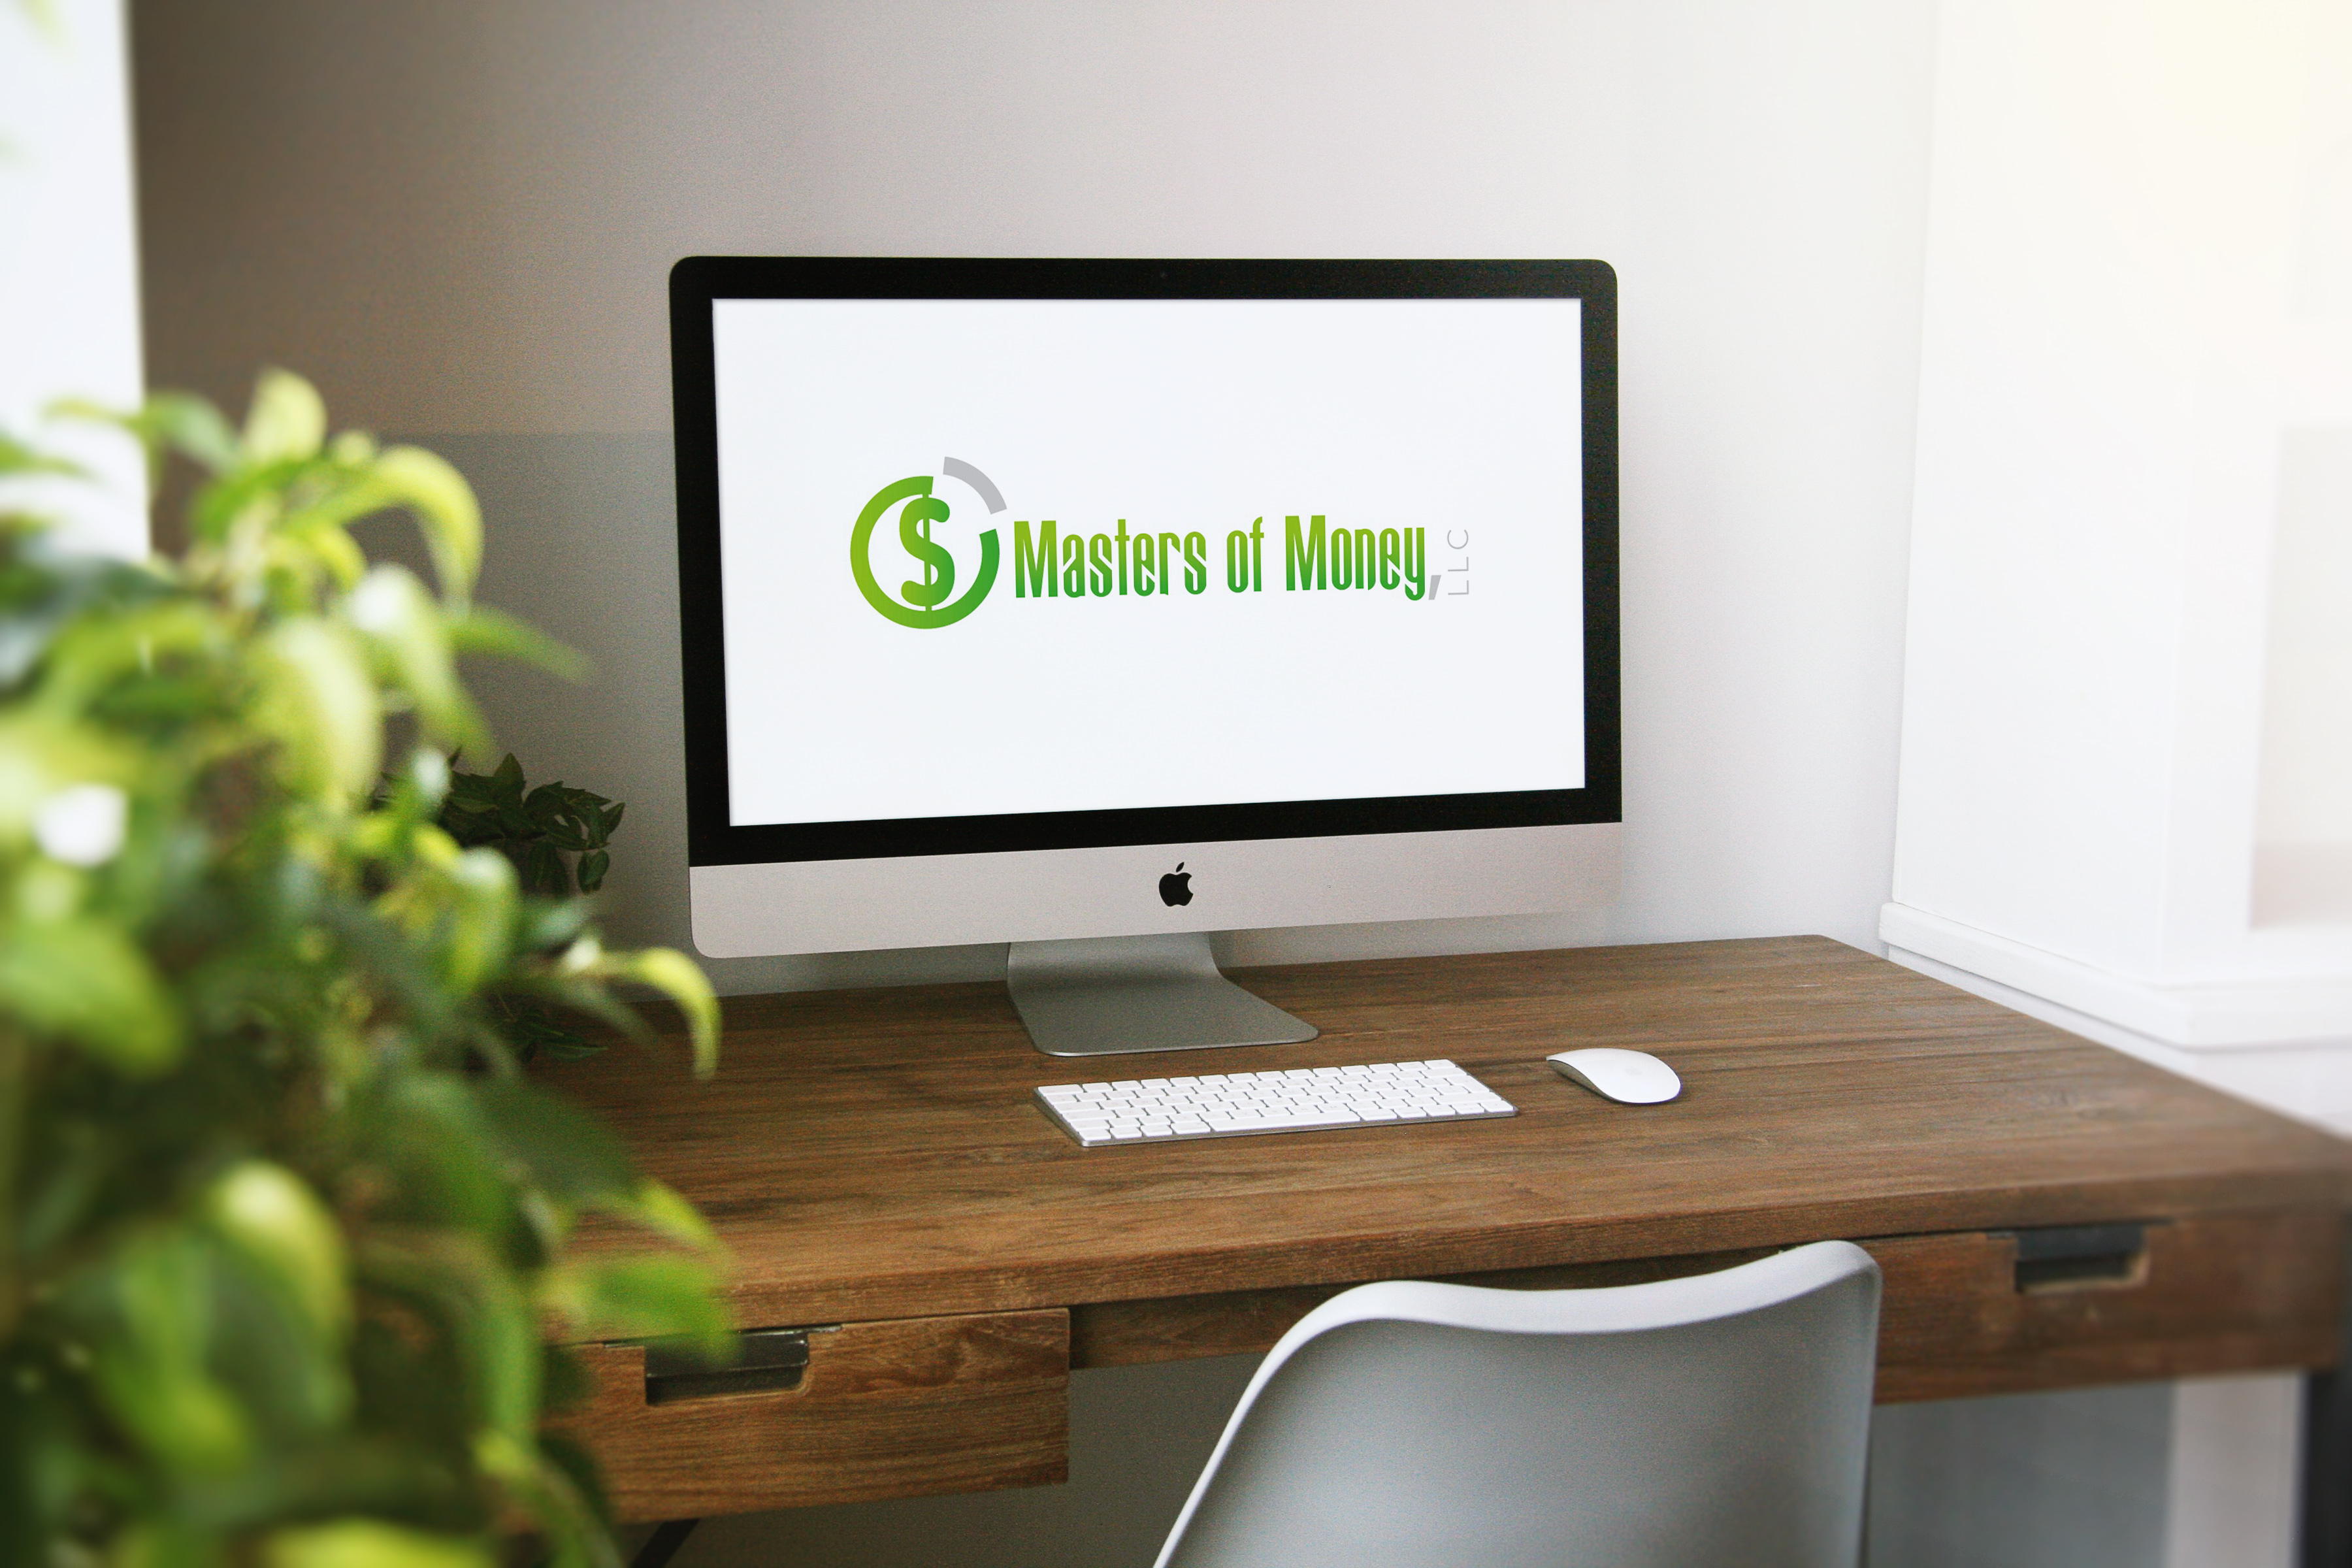 Masters of Money LLC Logo Desktop Computer Screensaver Photo